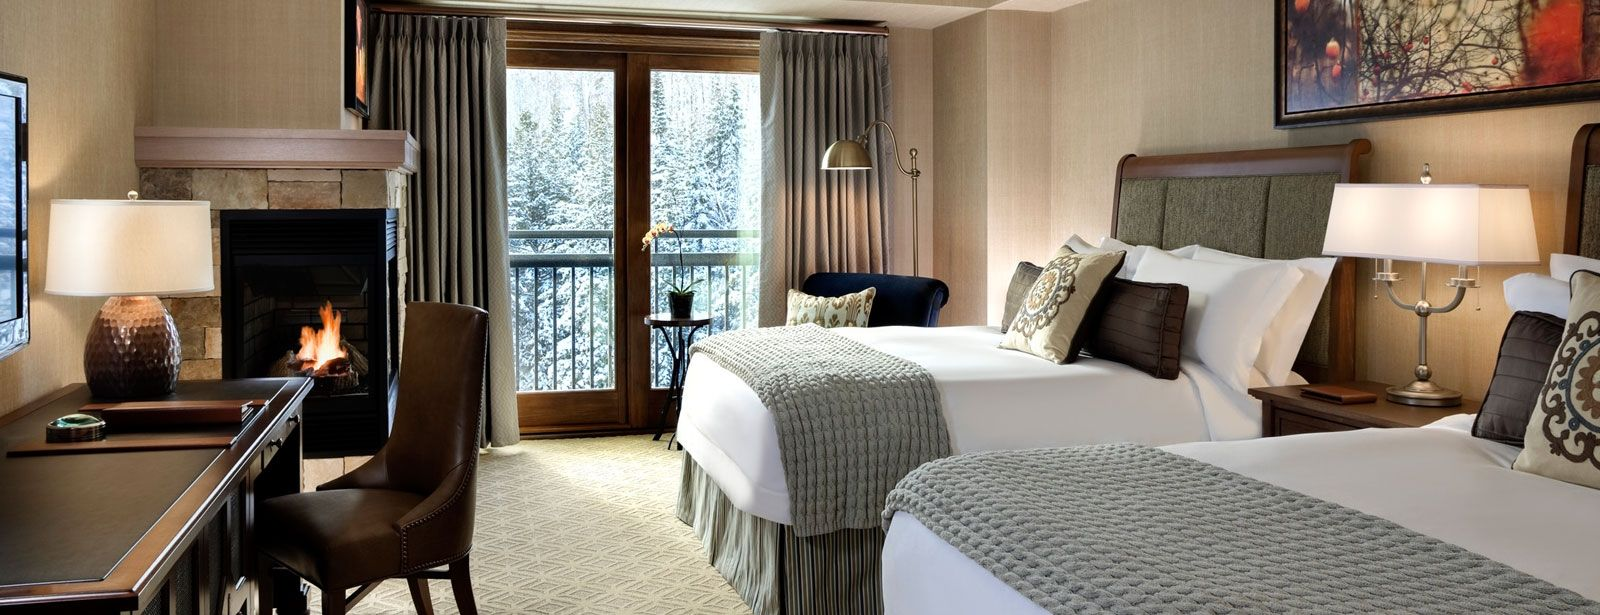 The St. Regis Deer Valley - Grand Deluxe Room